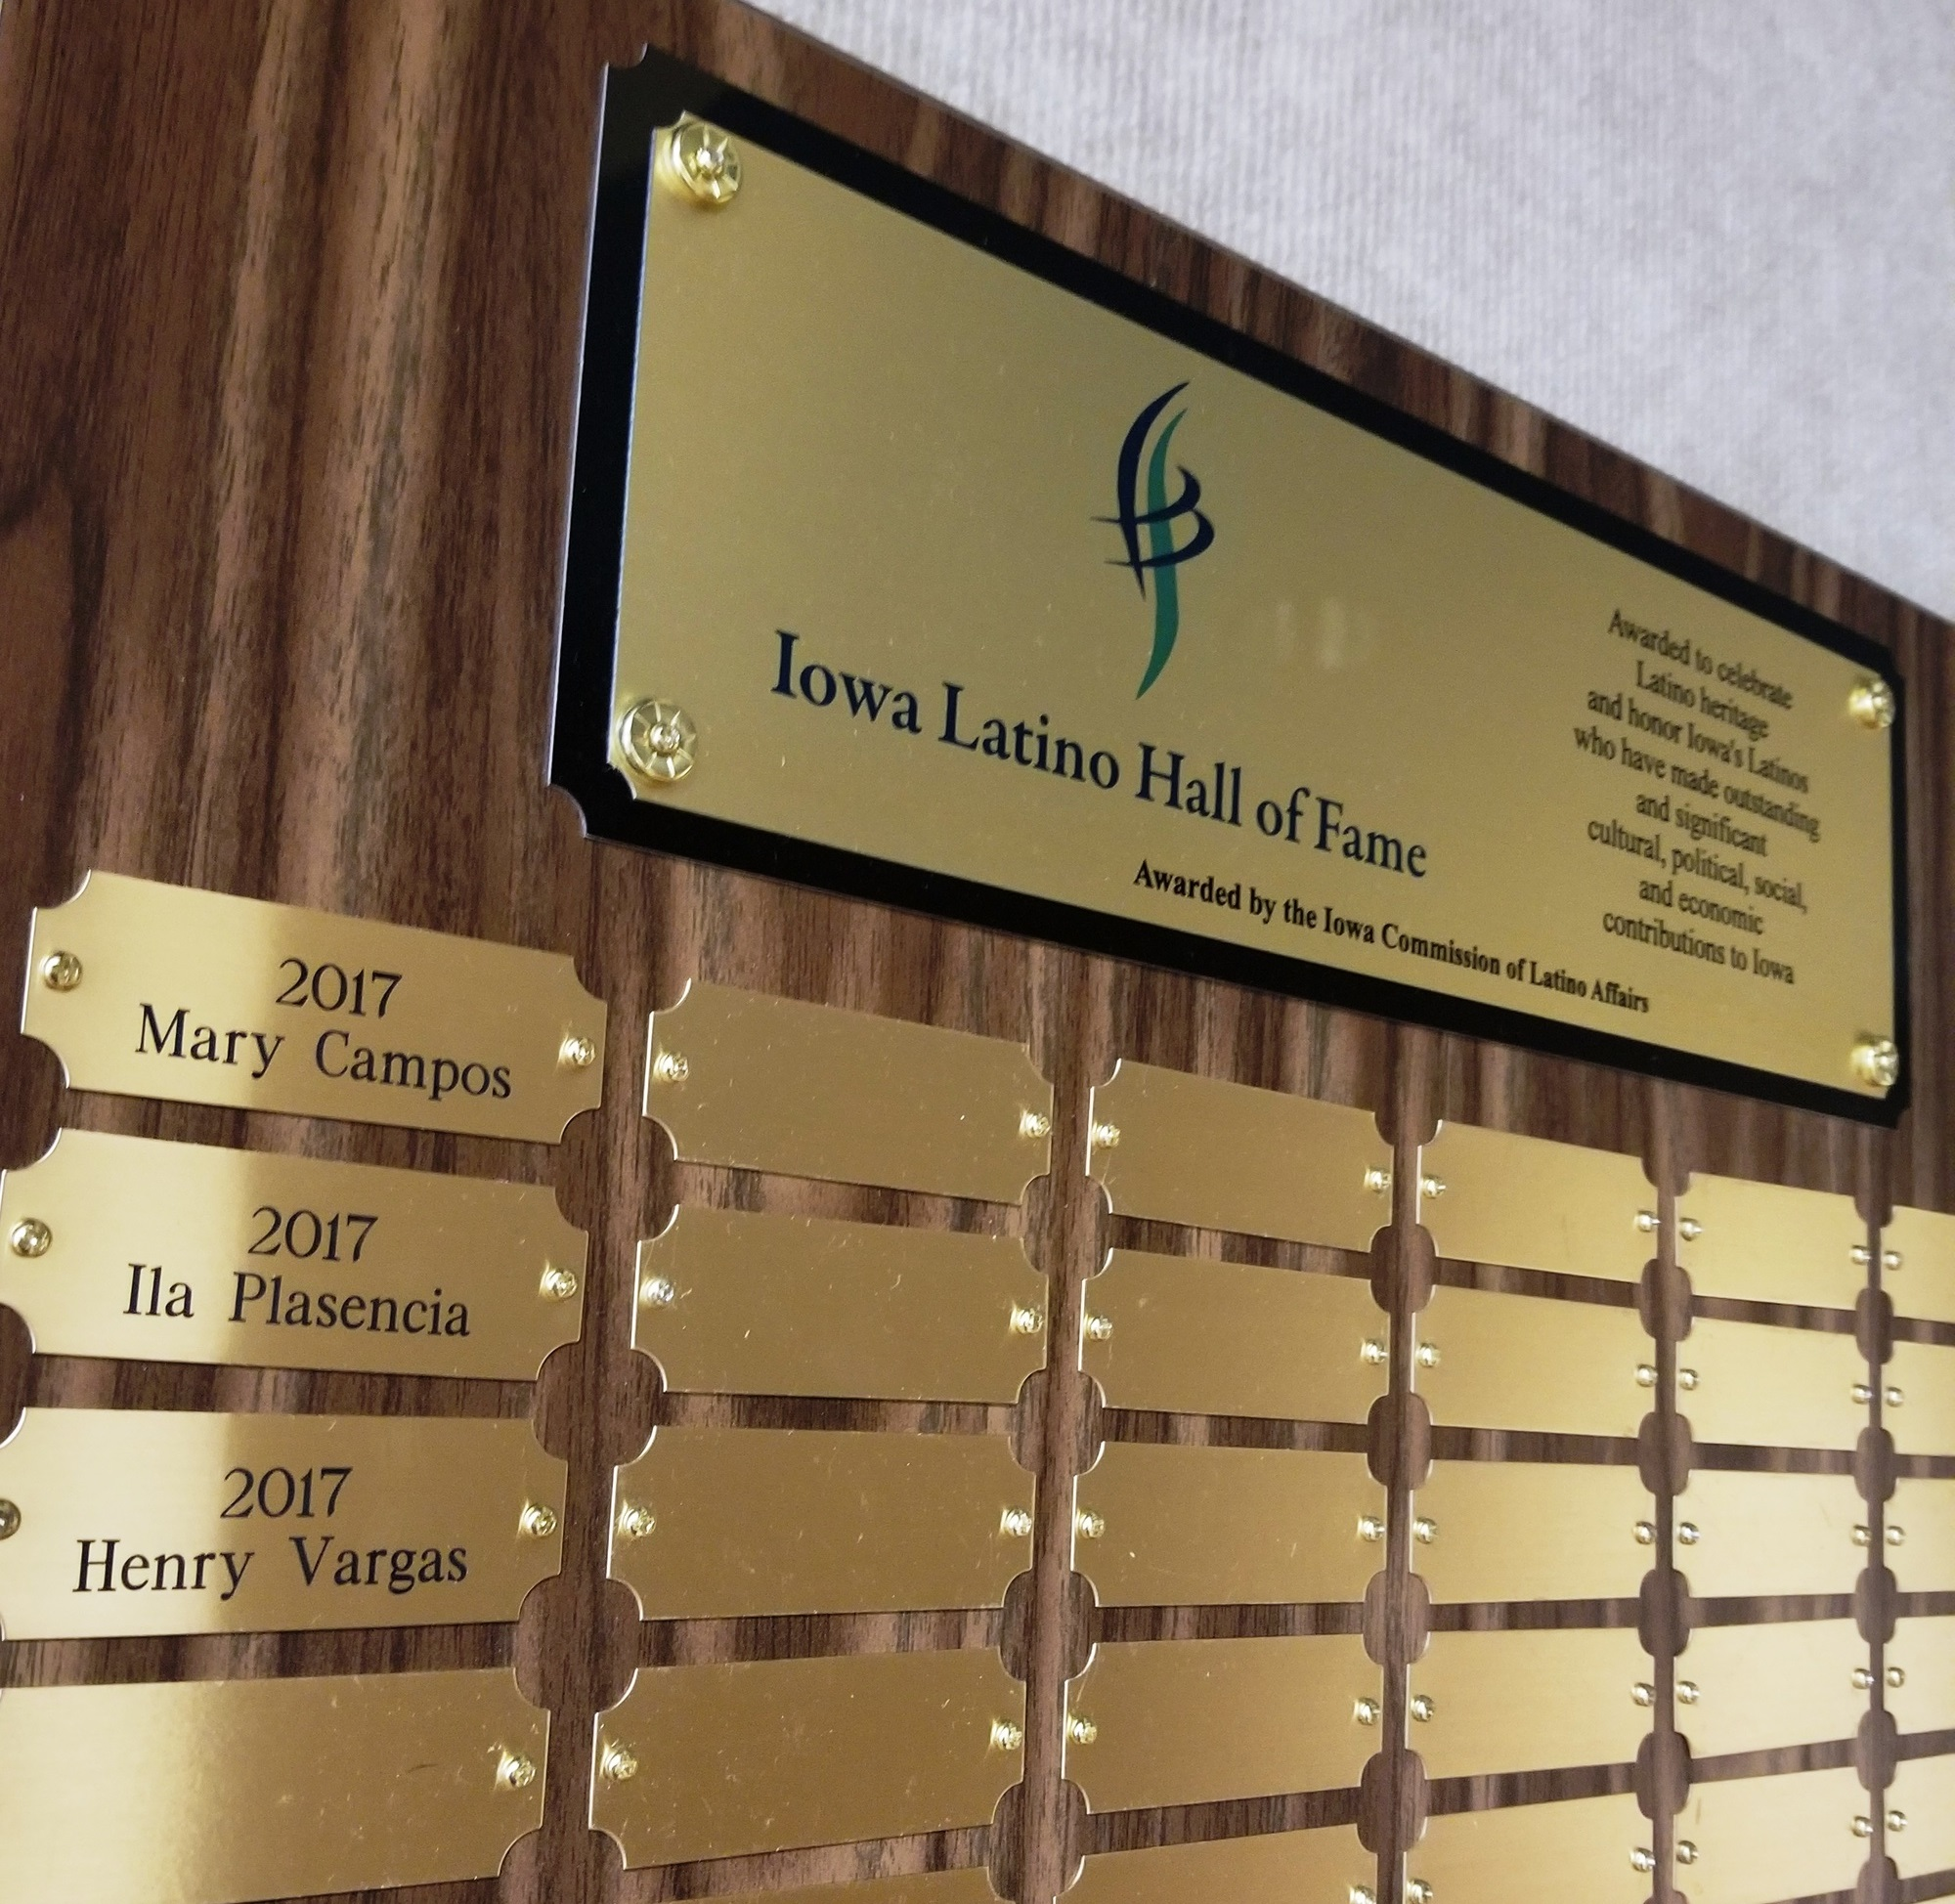 Iowa Latino Hall of Fame